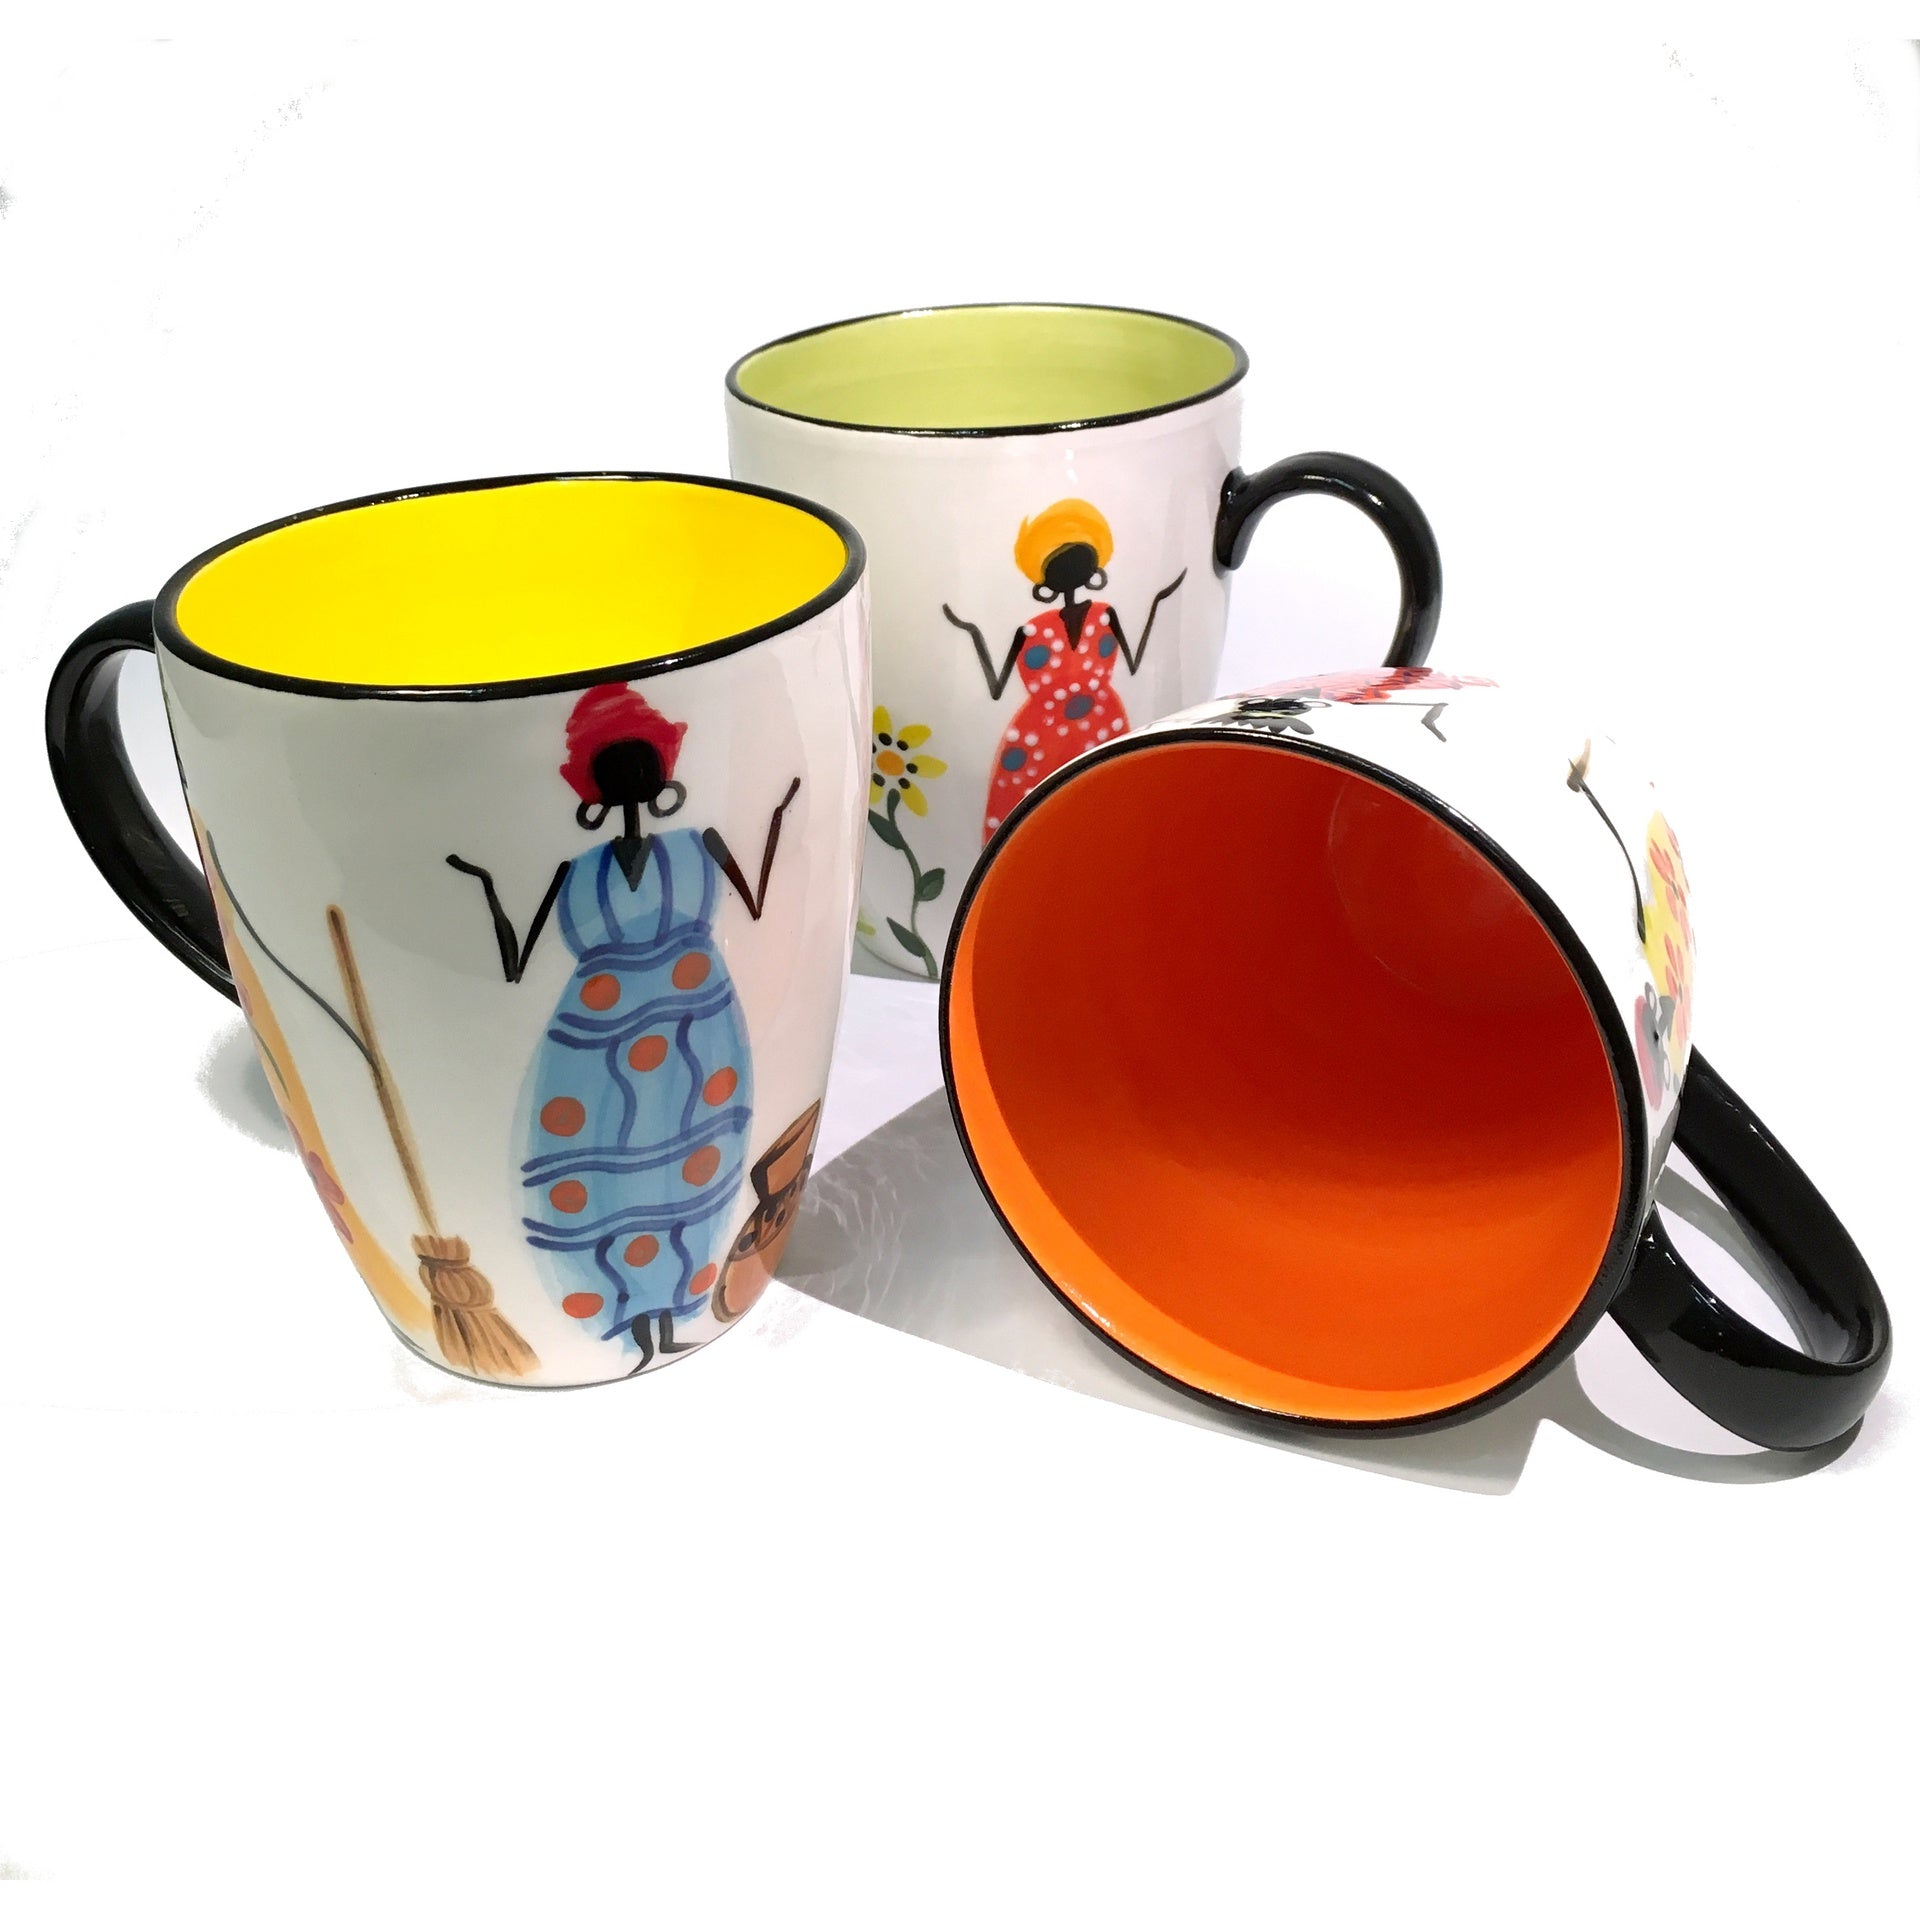 three Kapula handmade & hand painted ceramic mugs - white background with african ladies motif - Shop Fair Trade, Handmade, Ethical Gifts and homewares at ONLY JUST